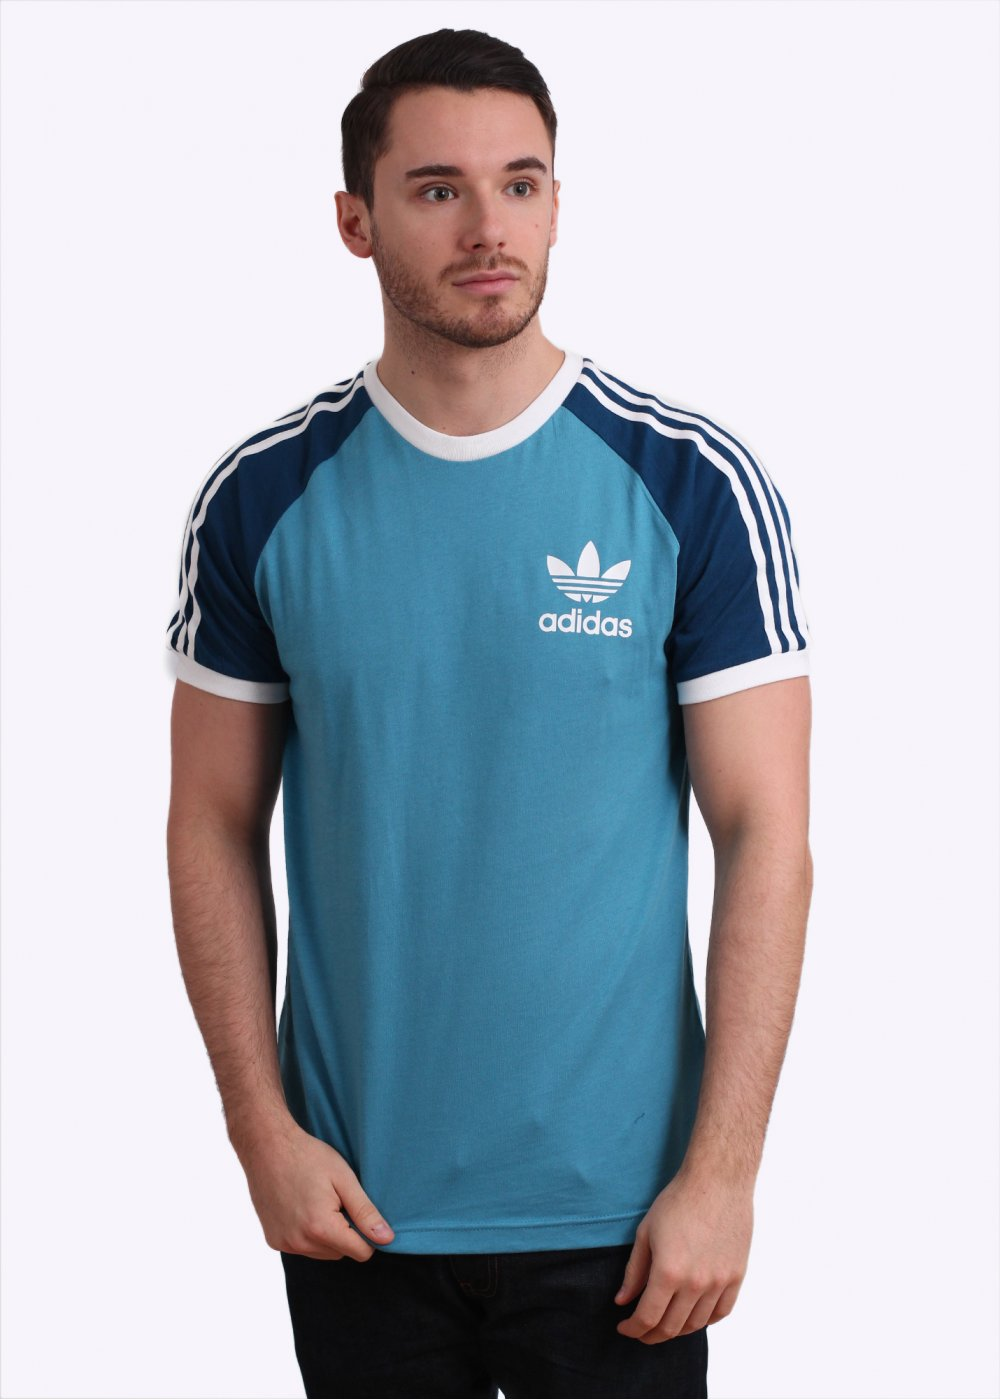 Adidas originals california tee light blue Light blue t shirt mens